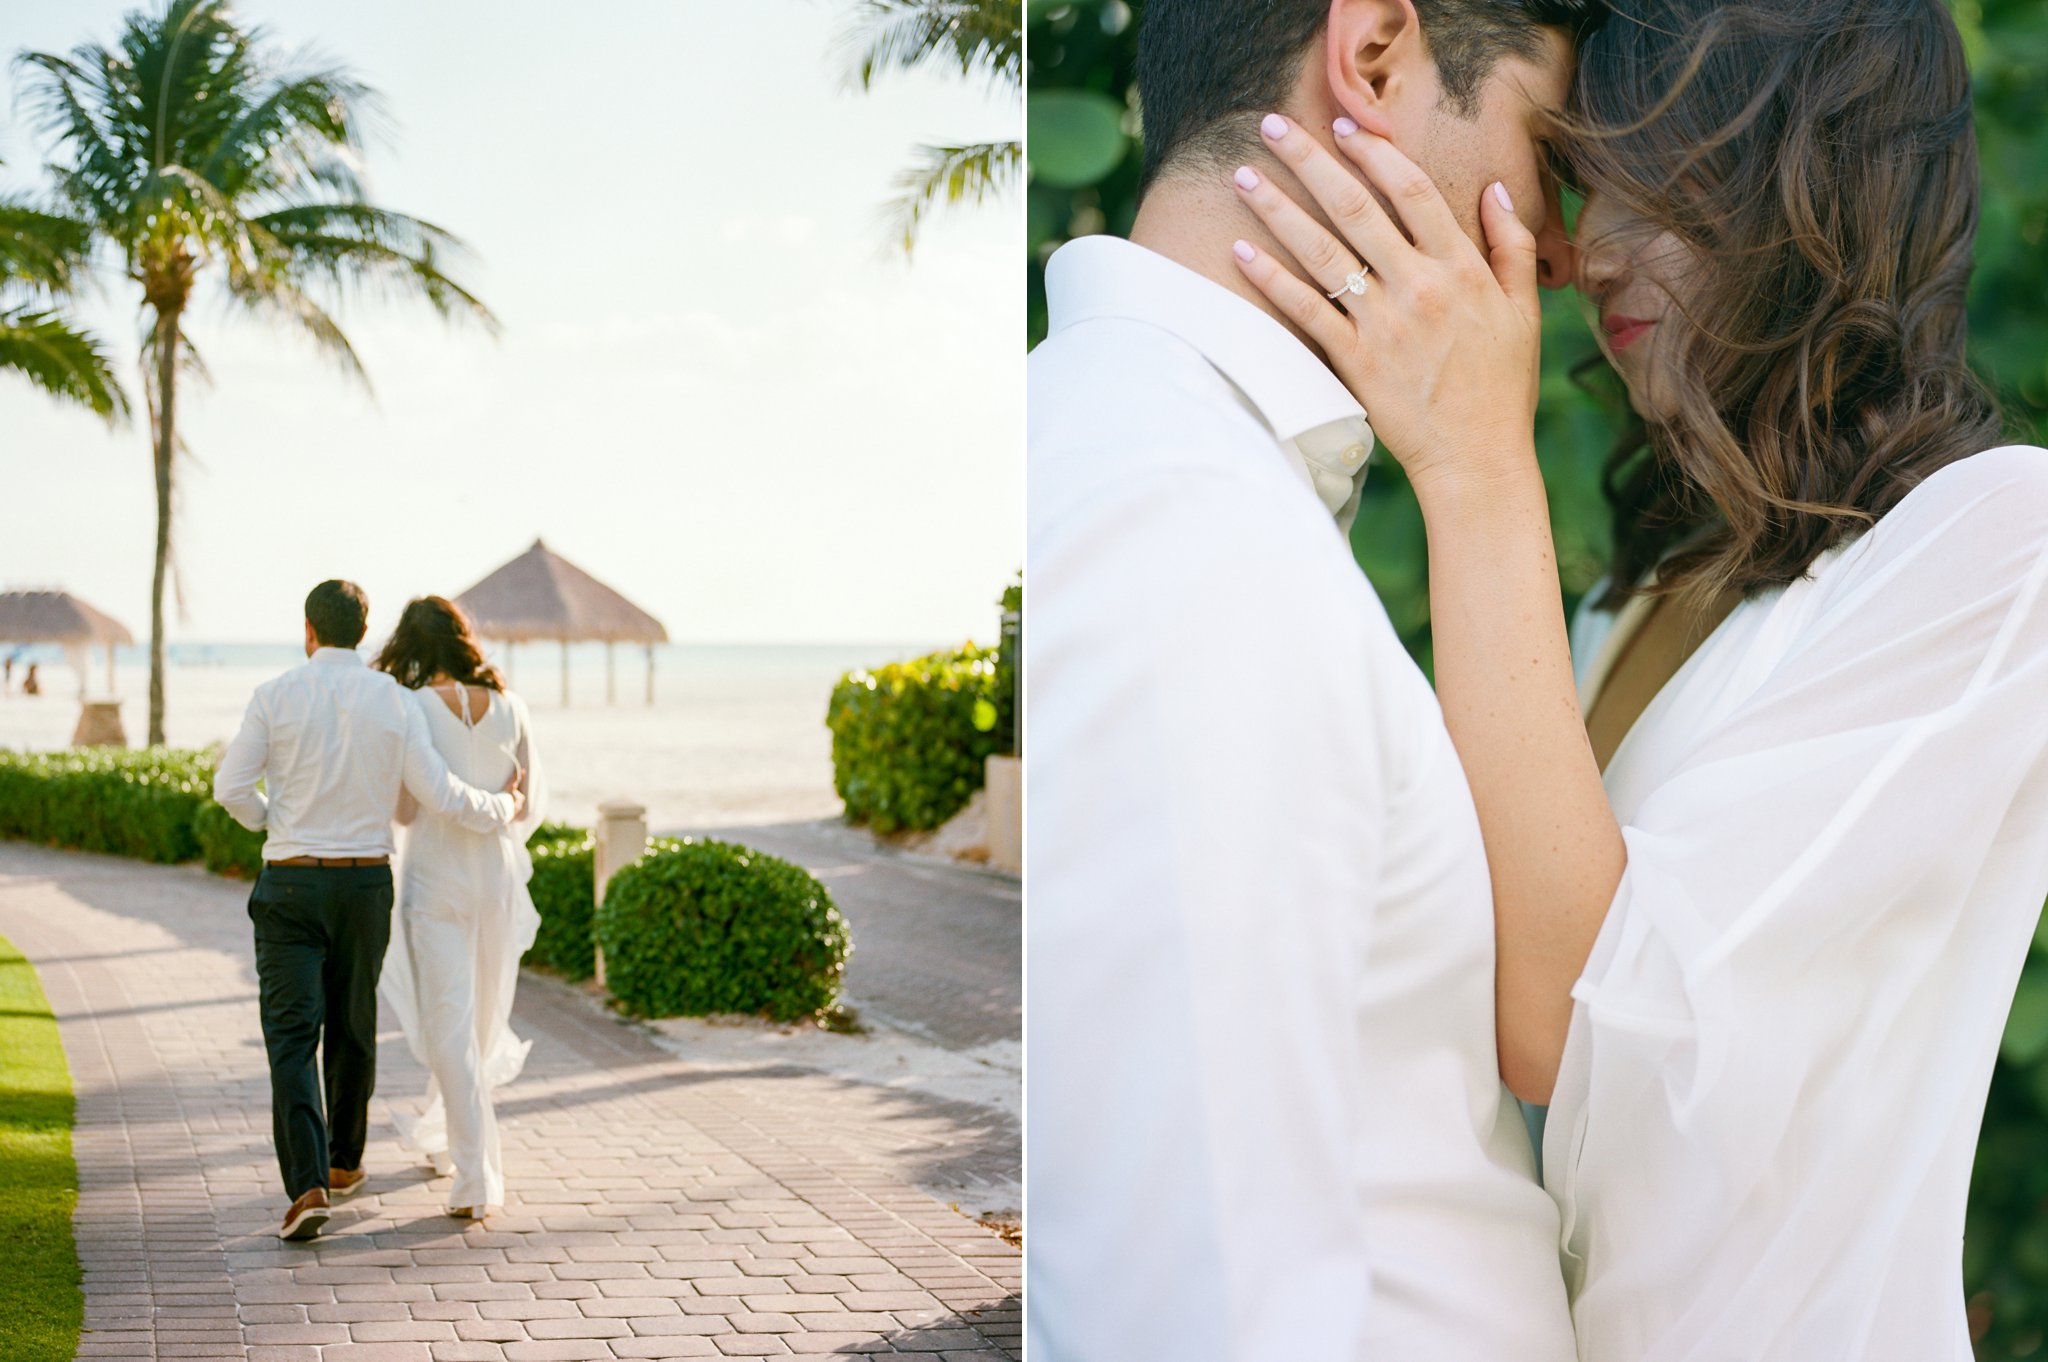 jw marriott marco island engagement session marco island wedding photographer shannon griffin photography_0005.jpg